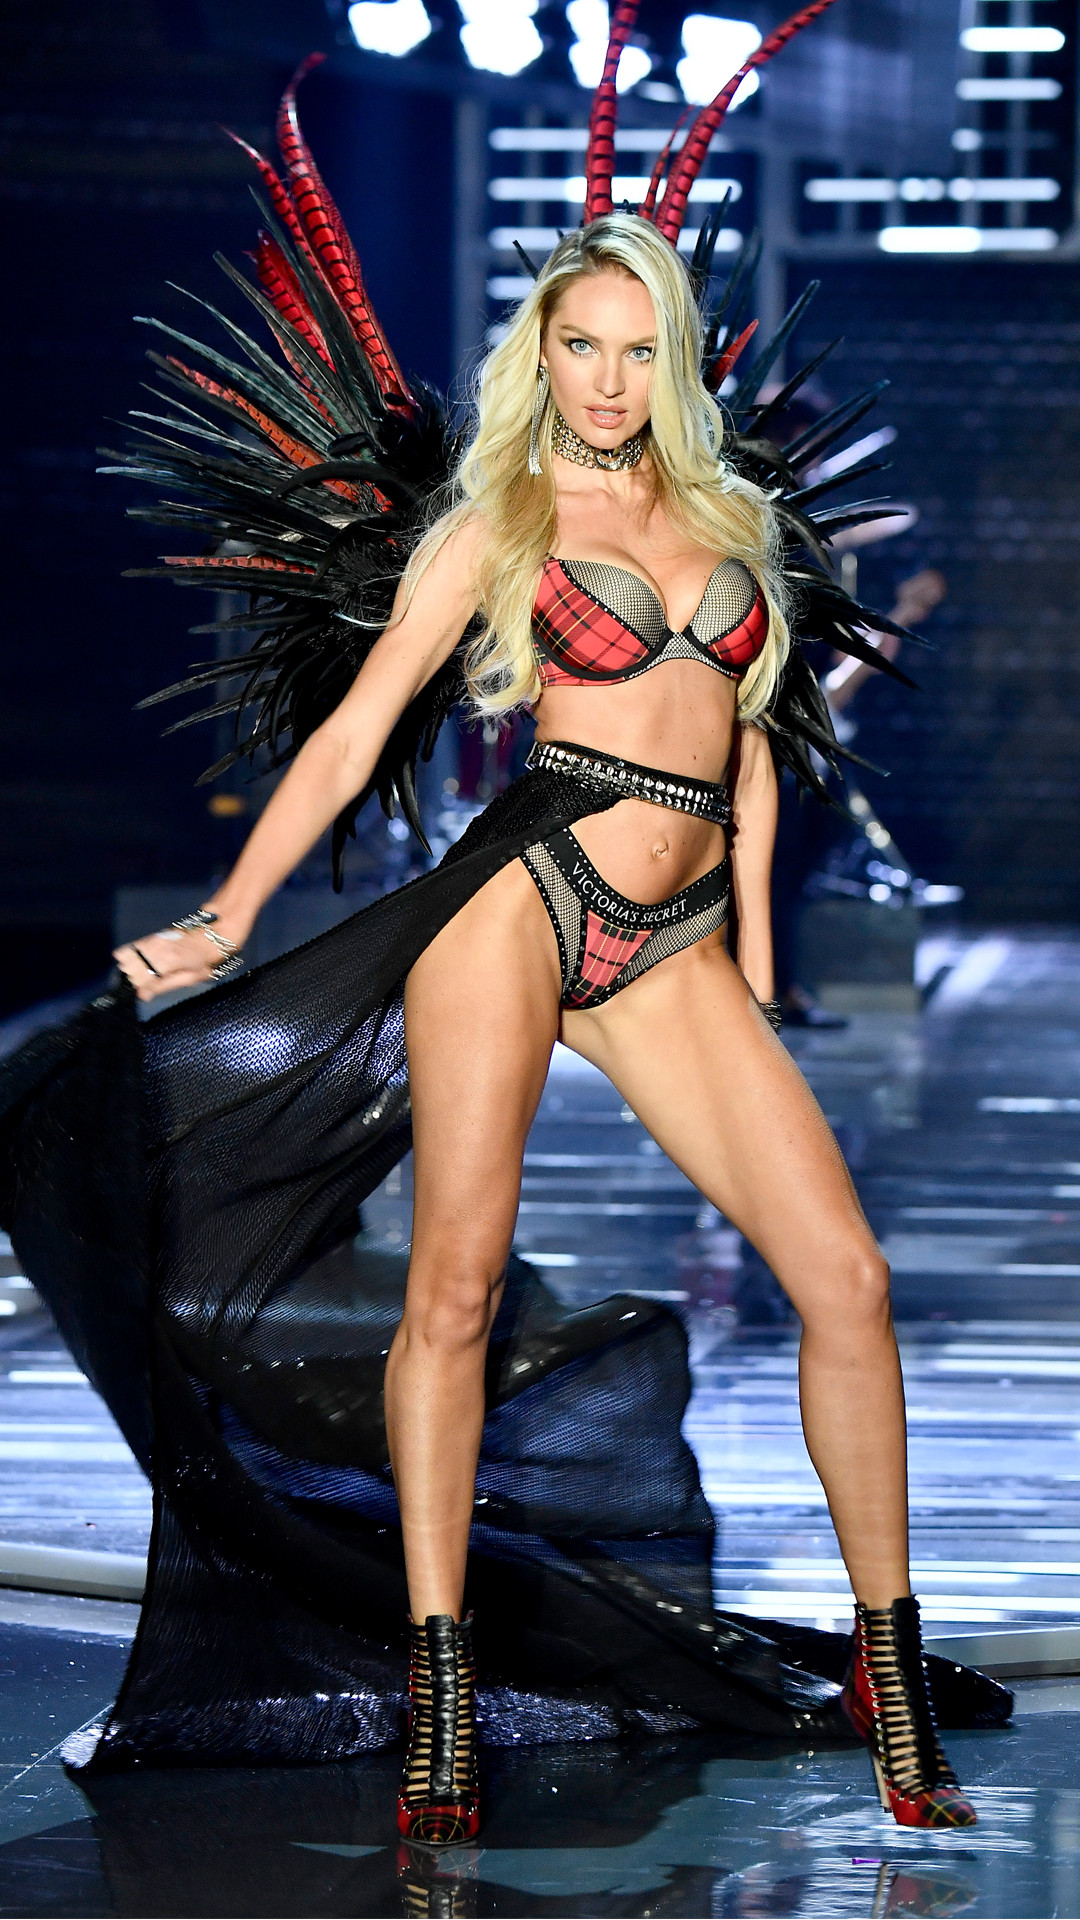 2017 Victoria's Secret Fashion Show, Candice Swanepoel